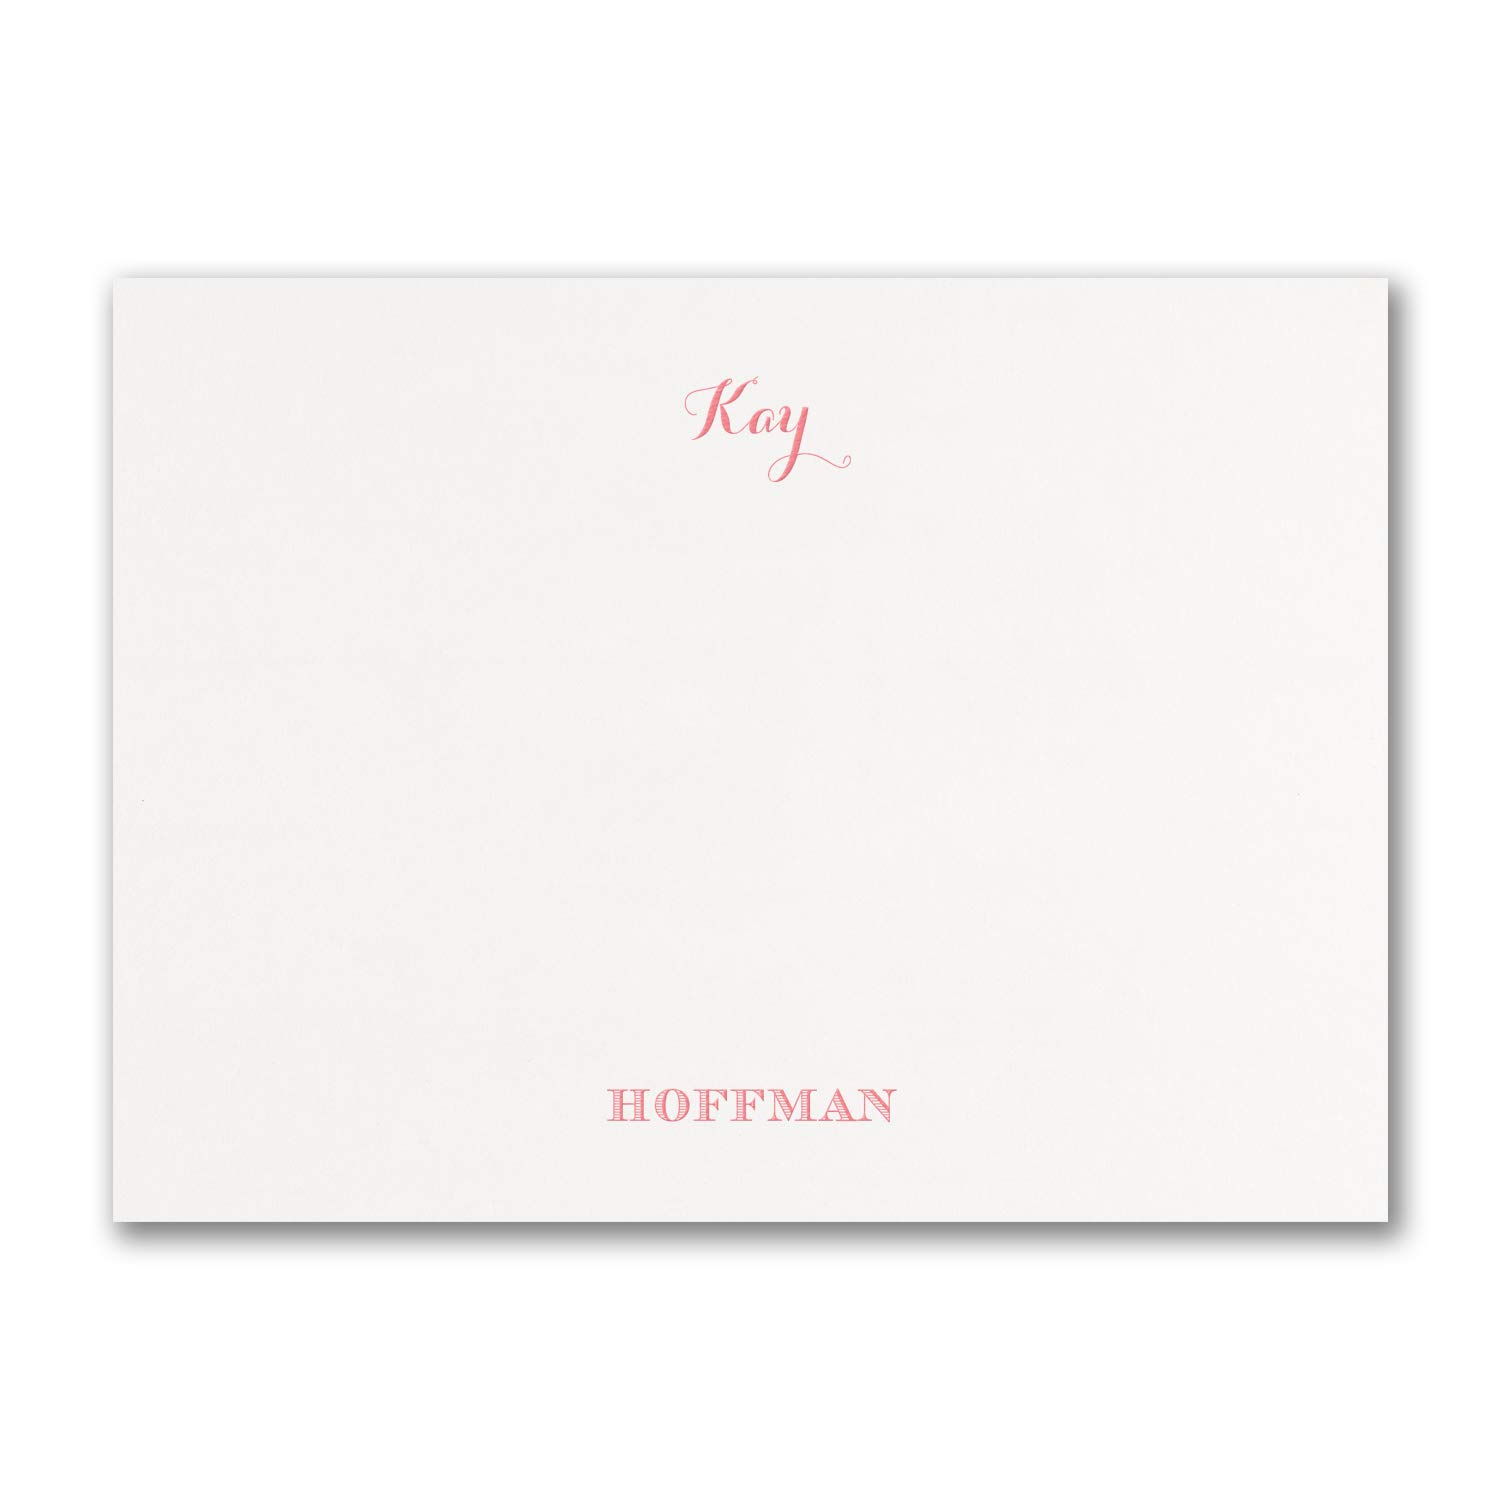 725pk Note Card - White-Personal Stationery by Carlson Craft (Image #1)